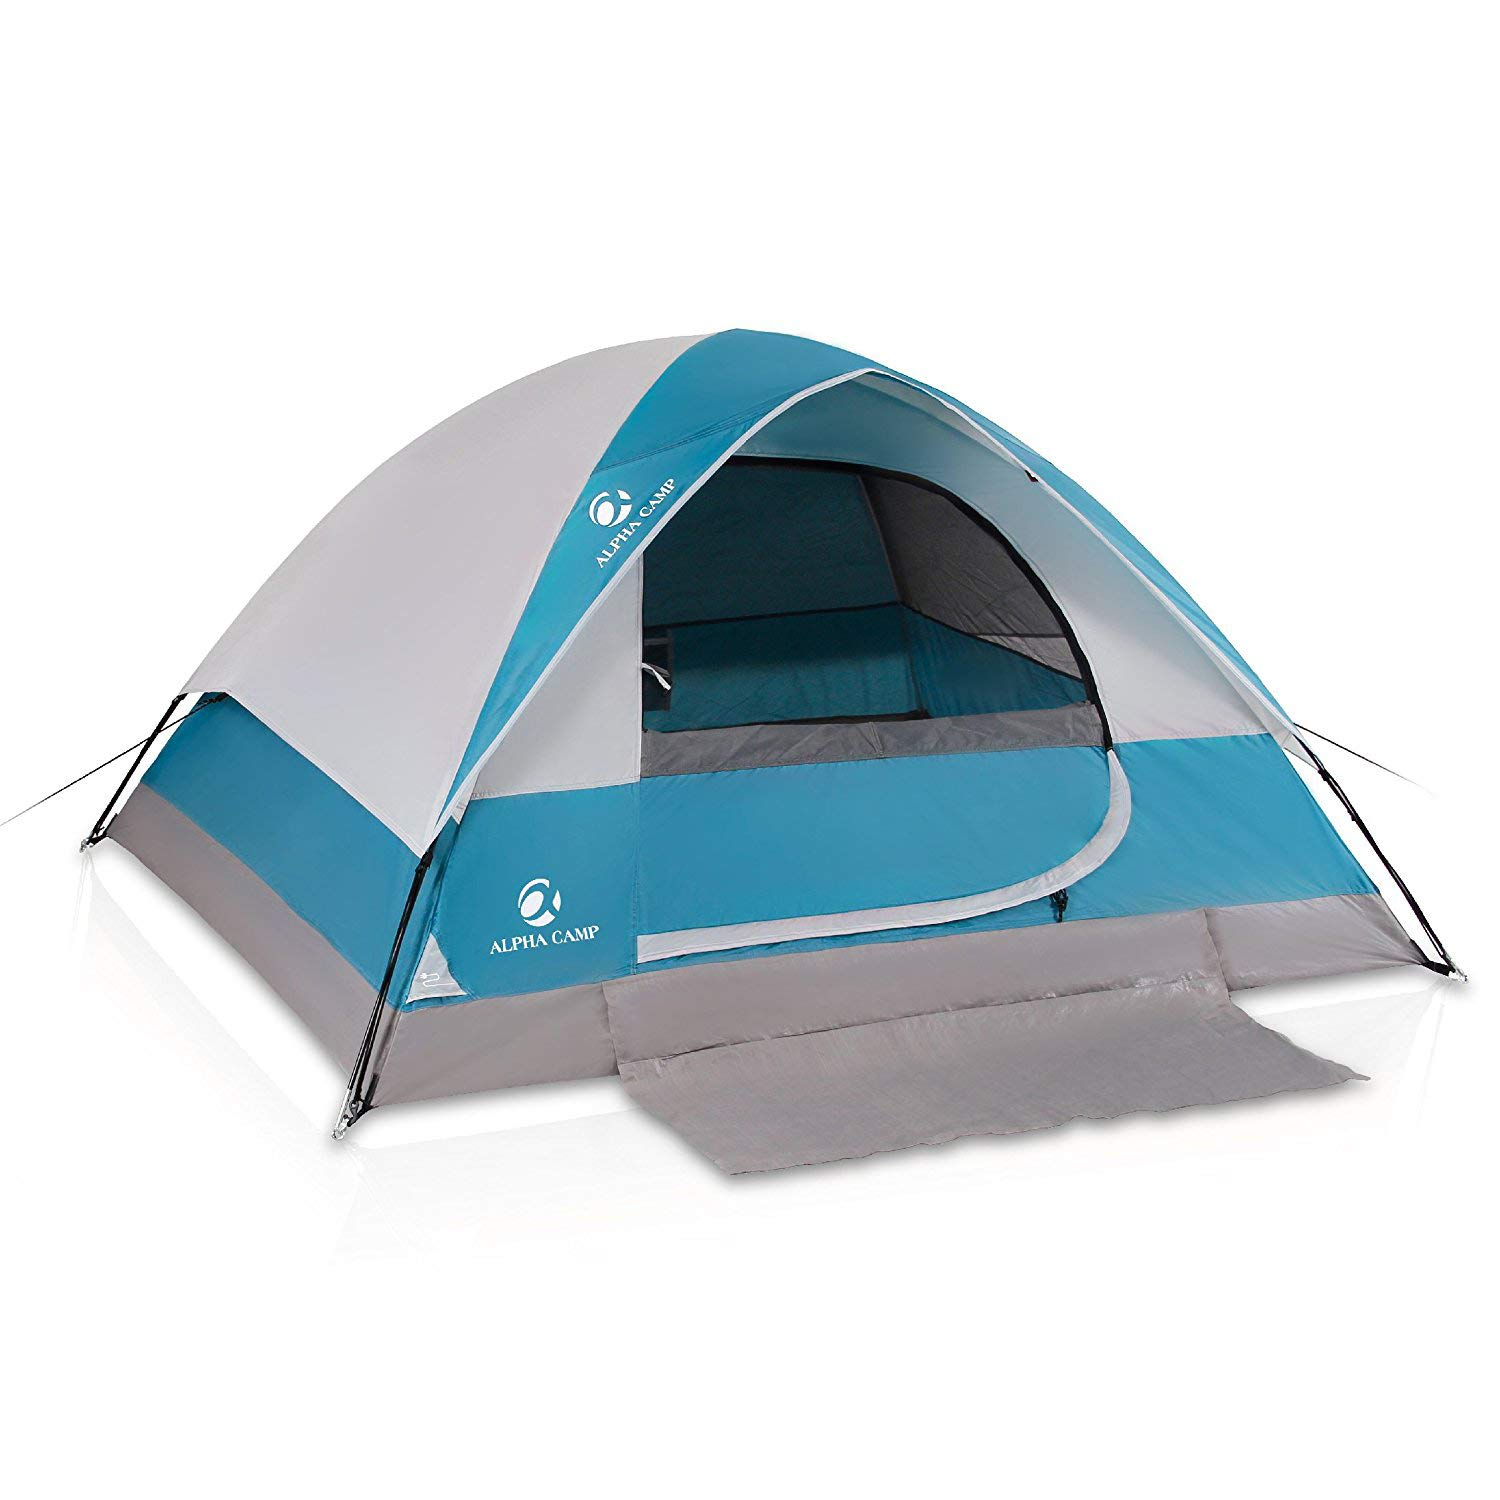 ALPHA CAMP 4 Person Camping Tent - 7' x 9' Blue by ALPHA CAMP